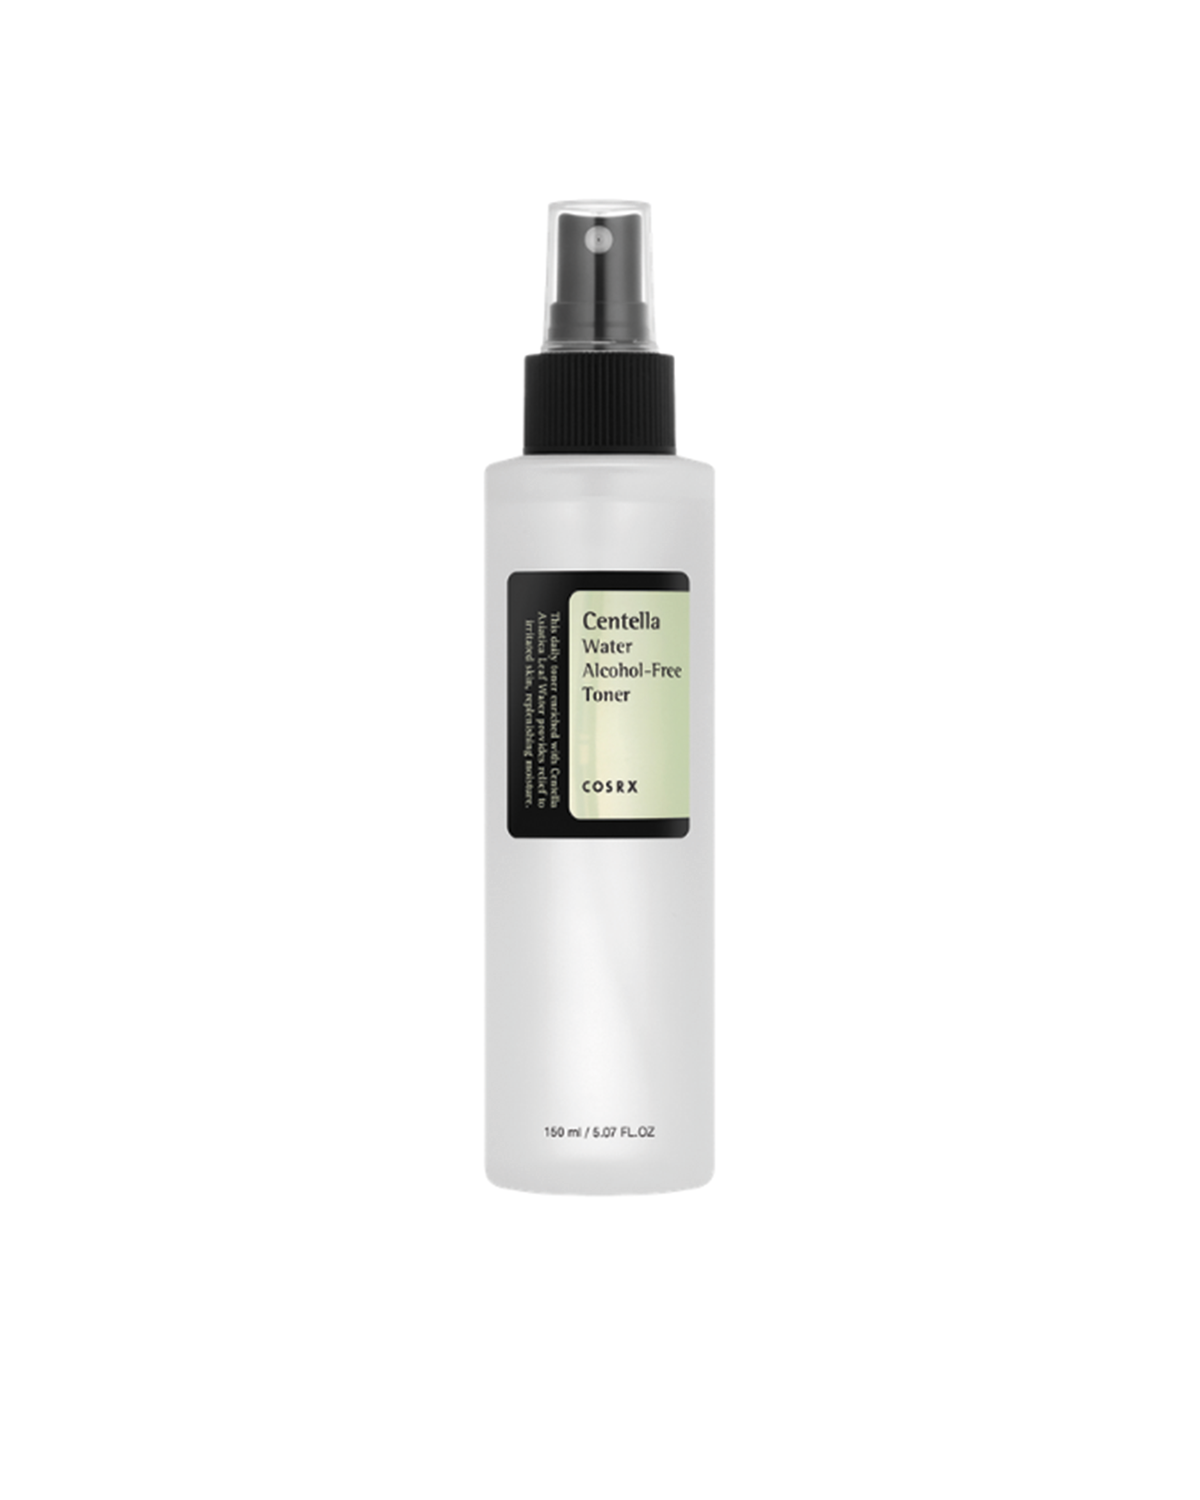 COSRX Centella Water Alcohol-Free Toner 150 ml